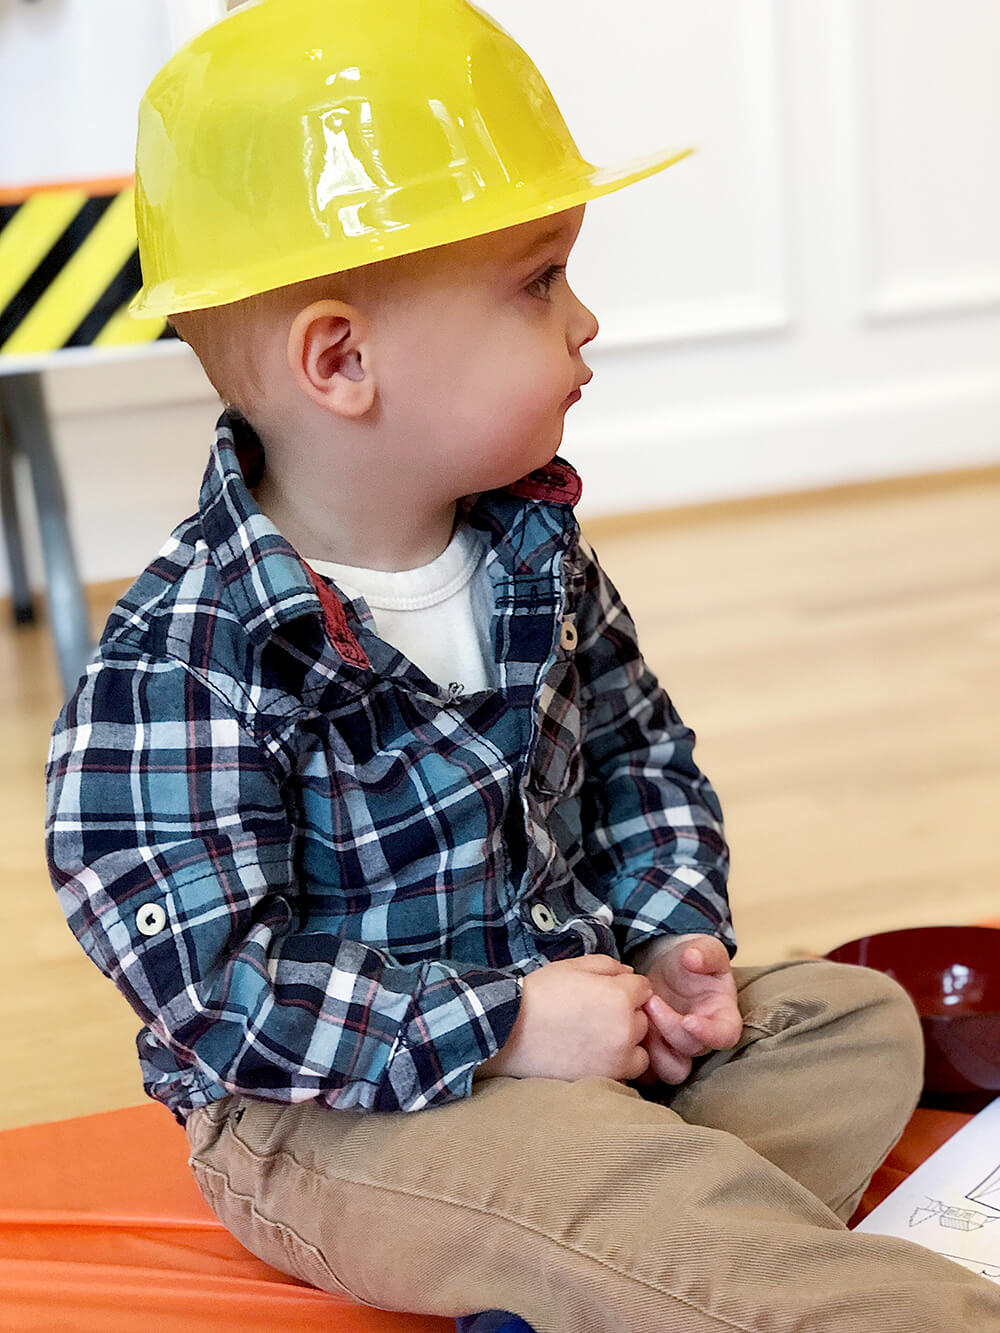 Birthday cutie in hard hat at Boys construction birthday party